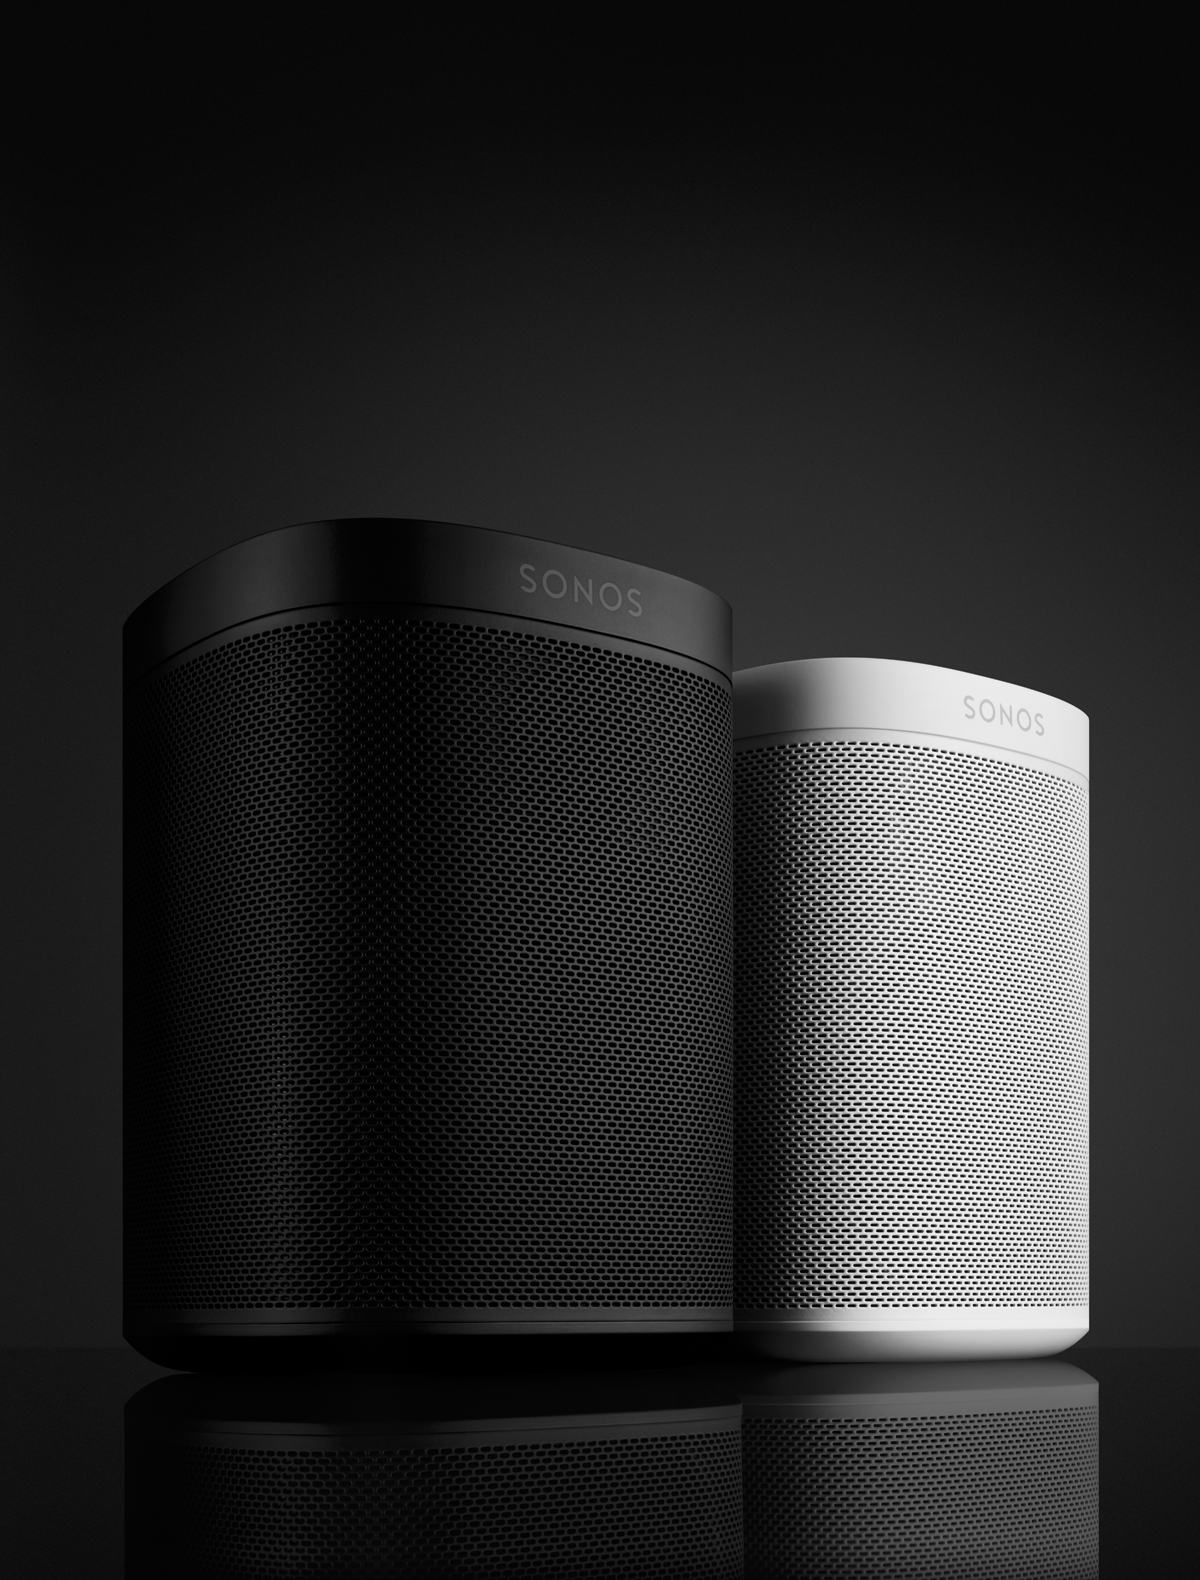 enceinte sonos play 1 tone. Black Bedroom Furniture Sets. Home Design Ideas